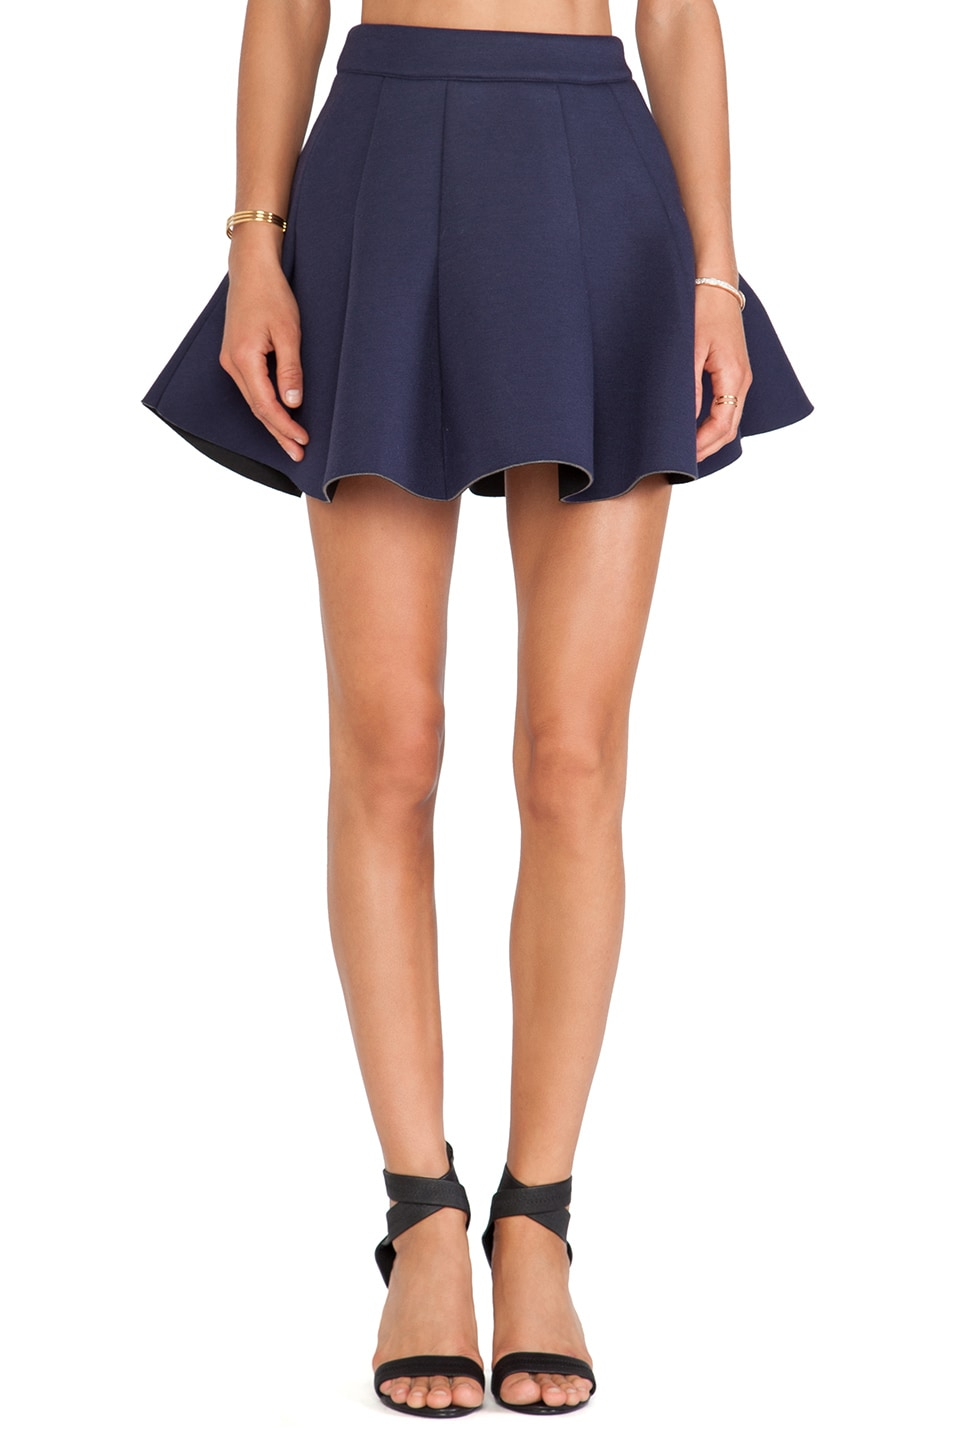 J.O.A. Neoprene Skirt in Navy